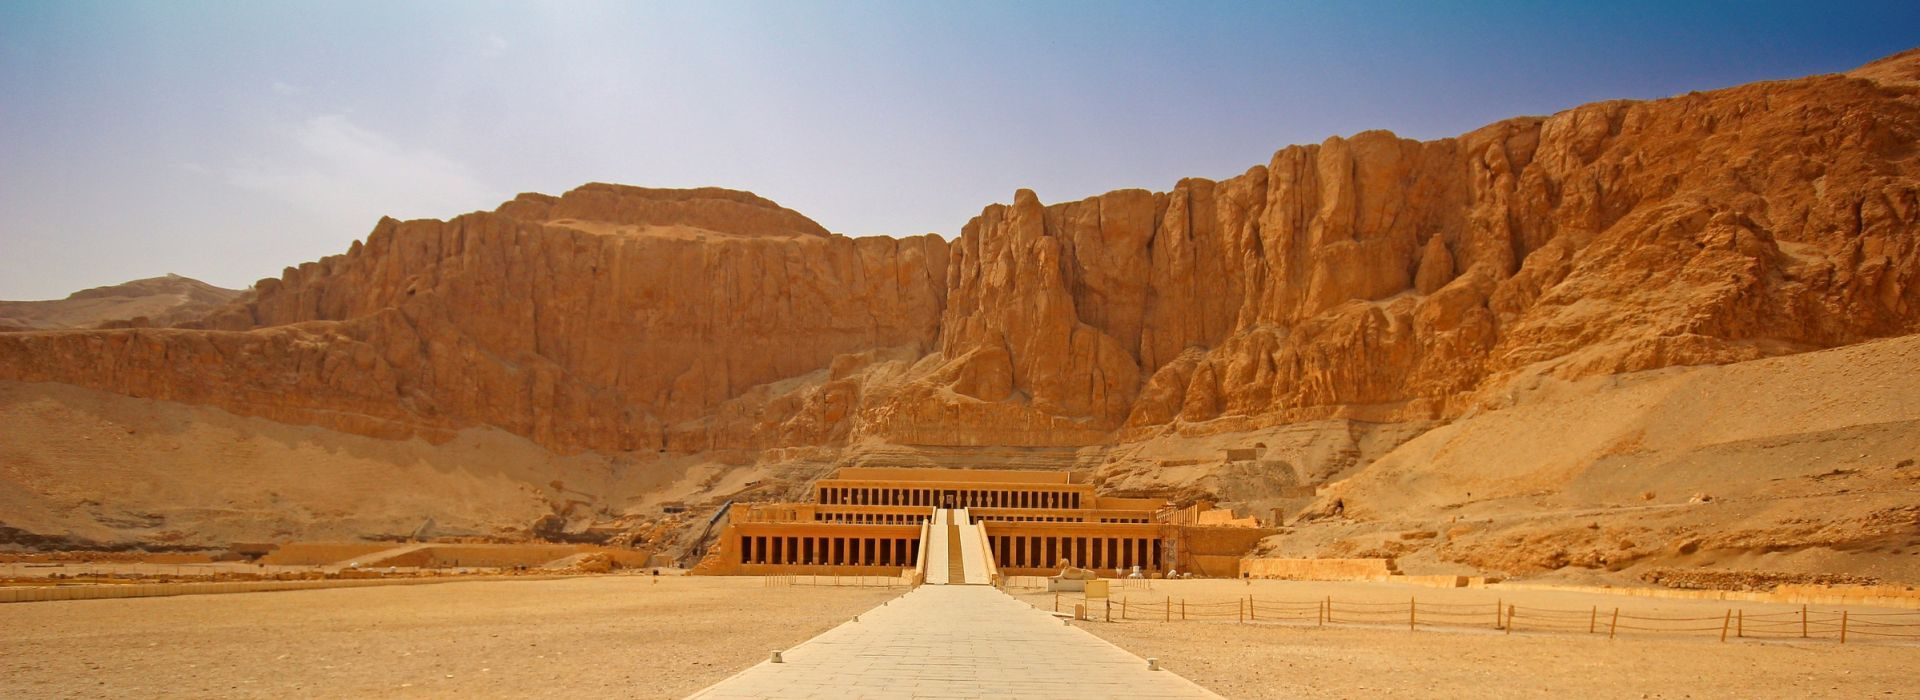 Cultural, religious and historic sites Tours in Aswan